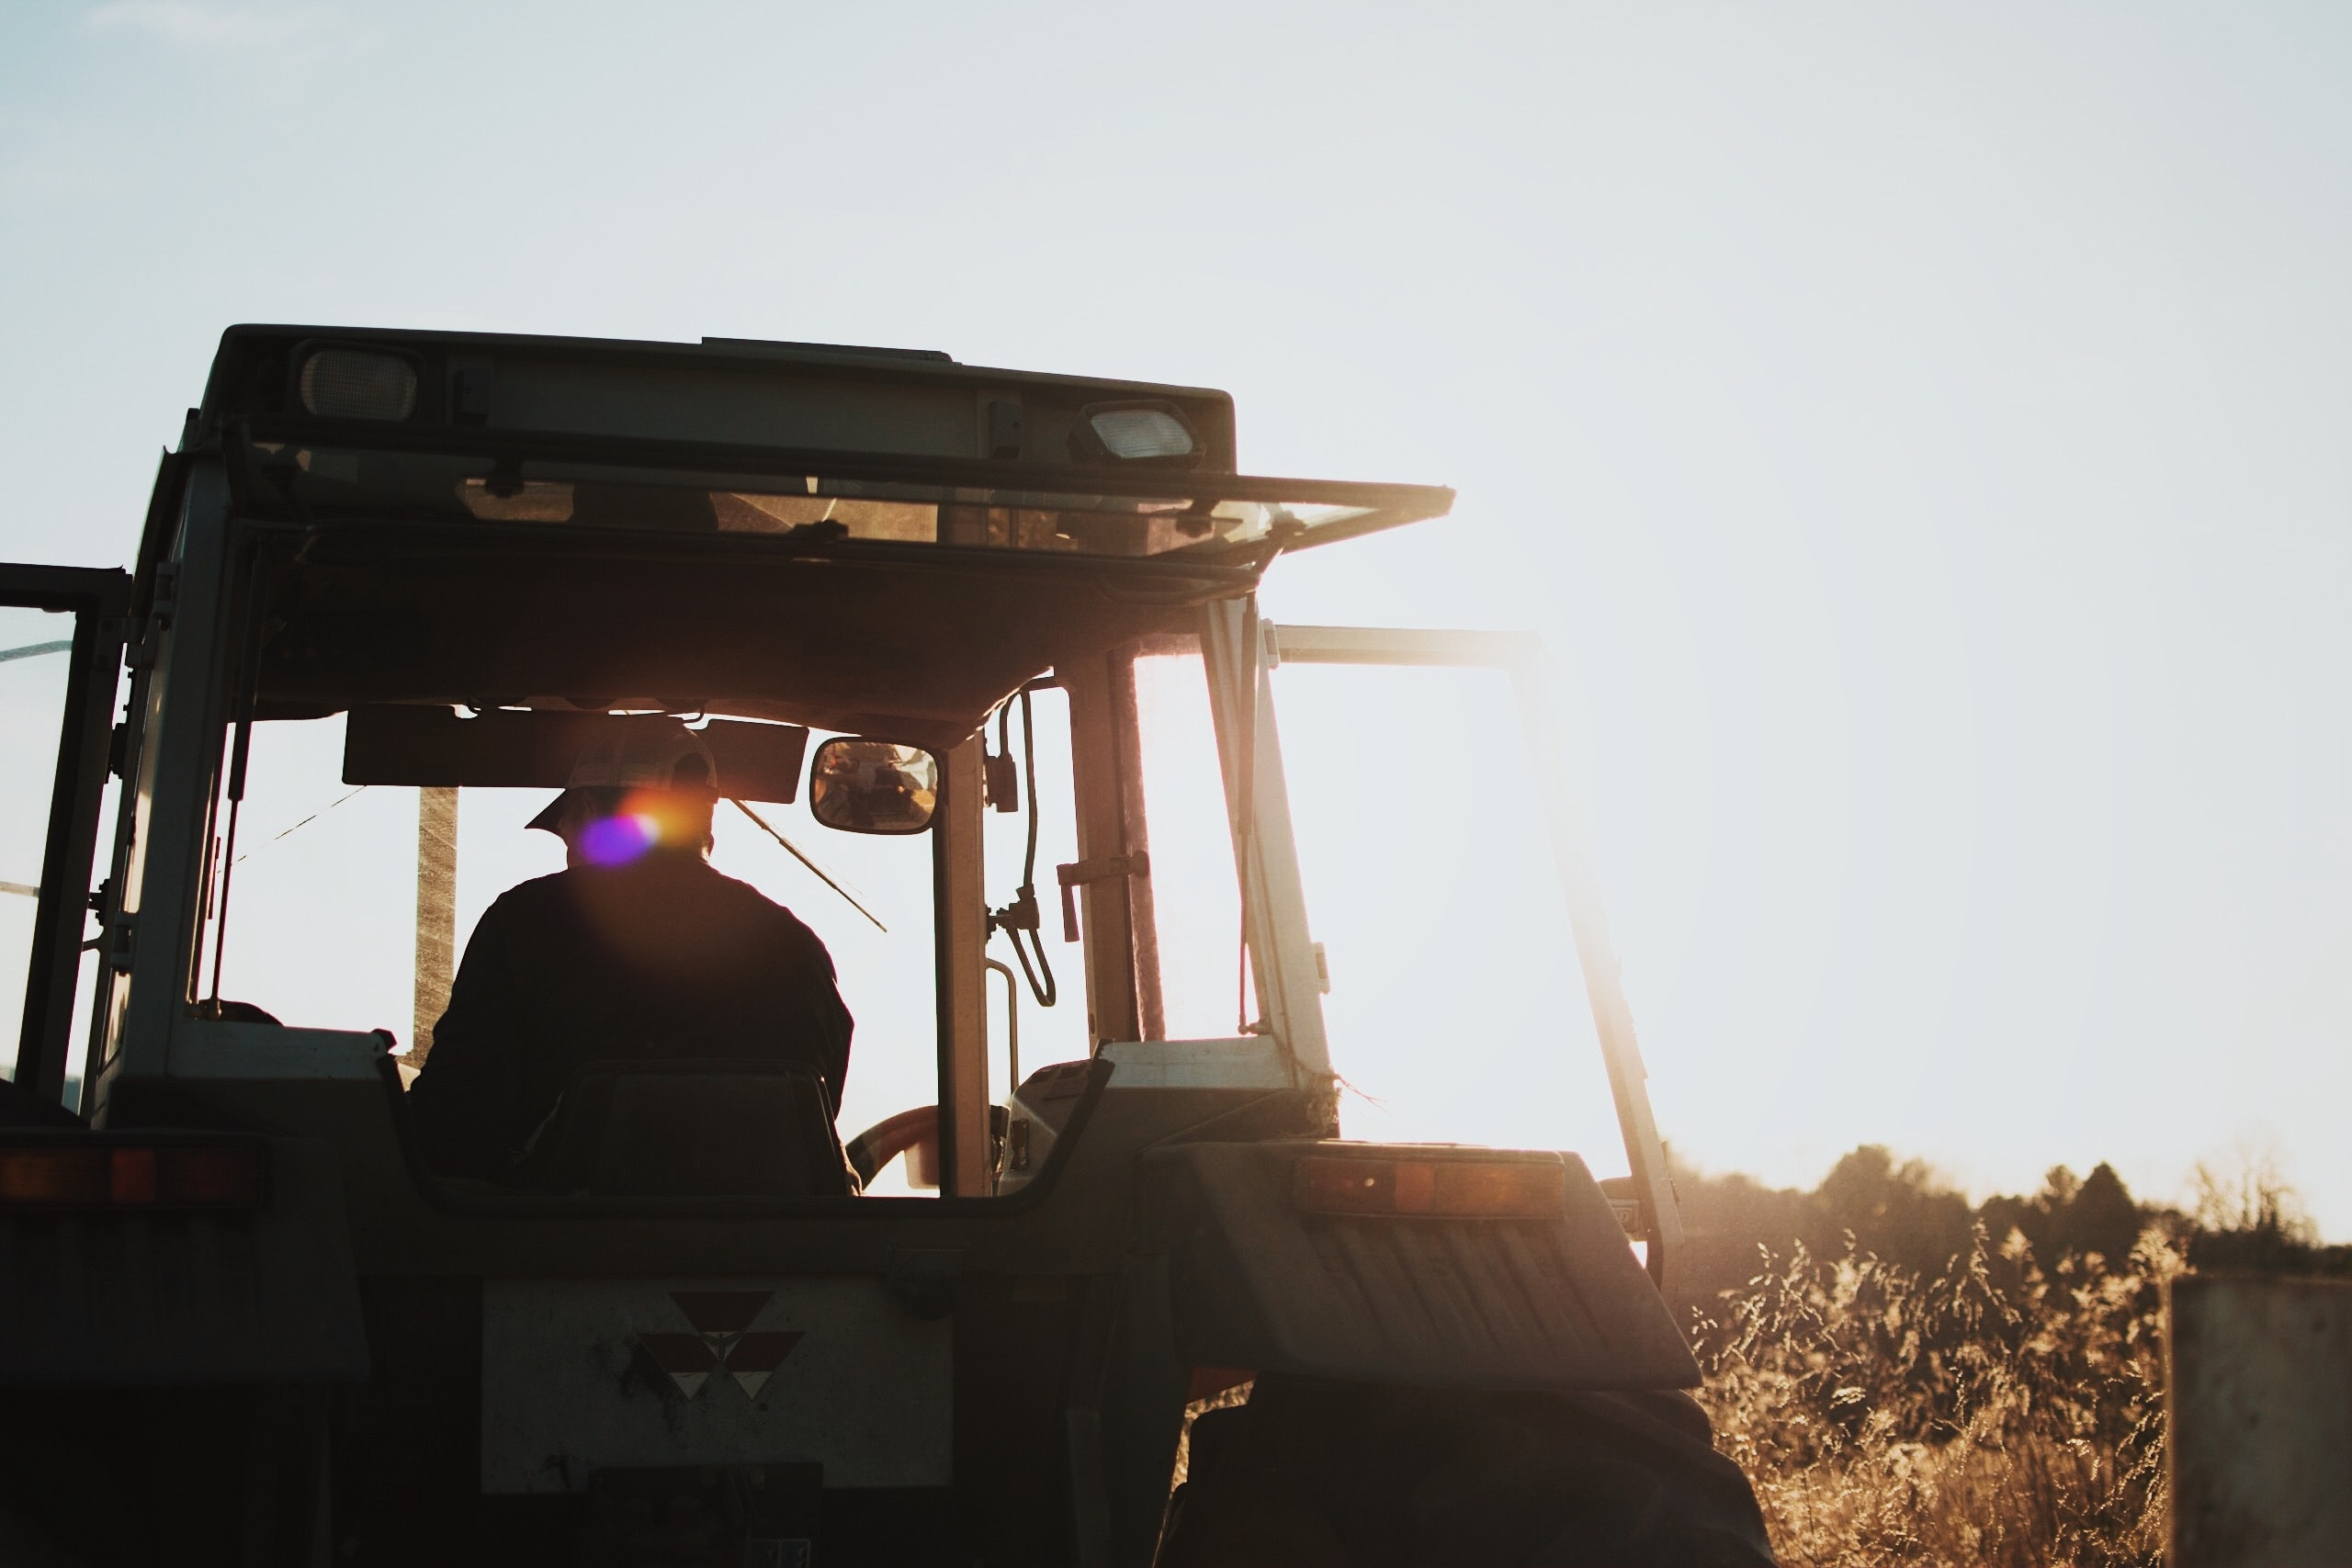 silhouette of man riding tractor